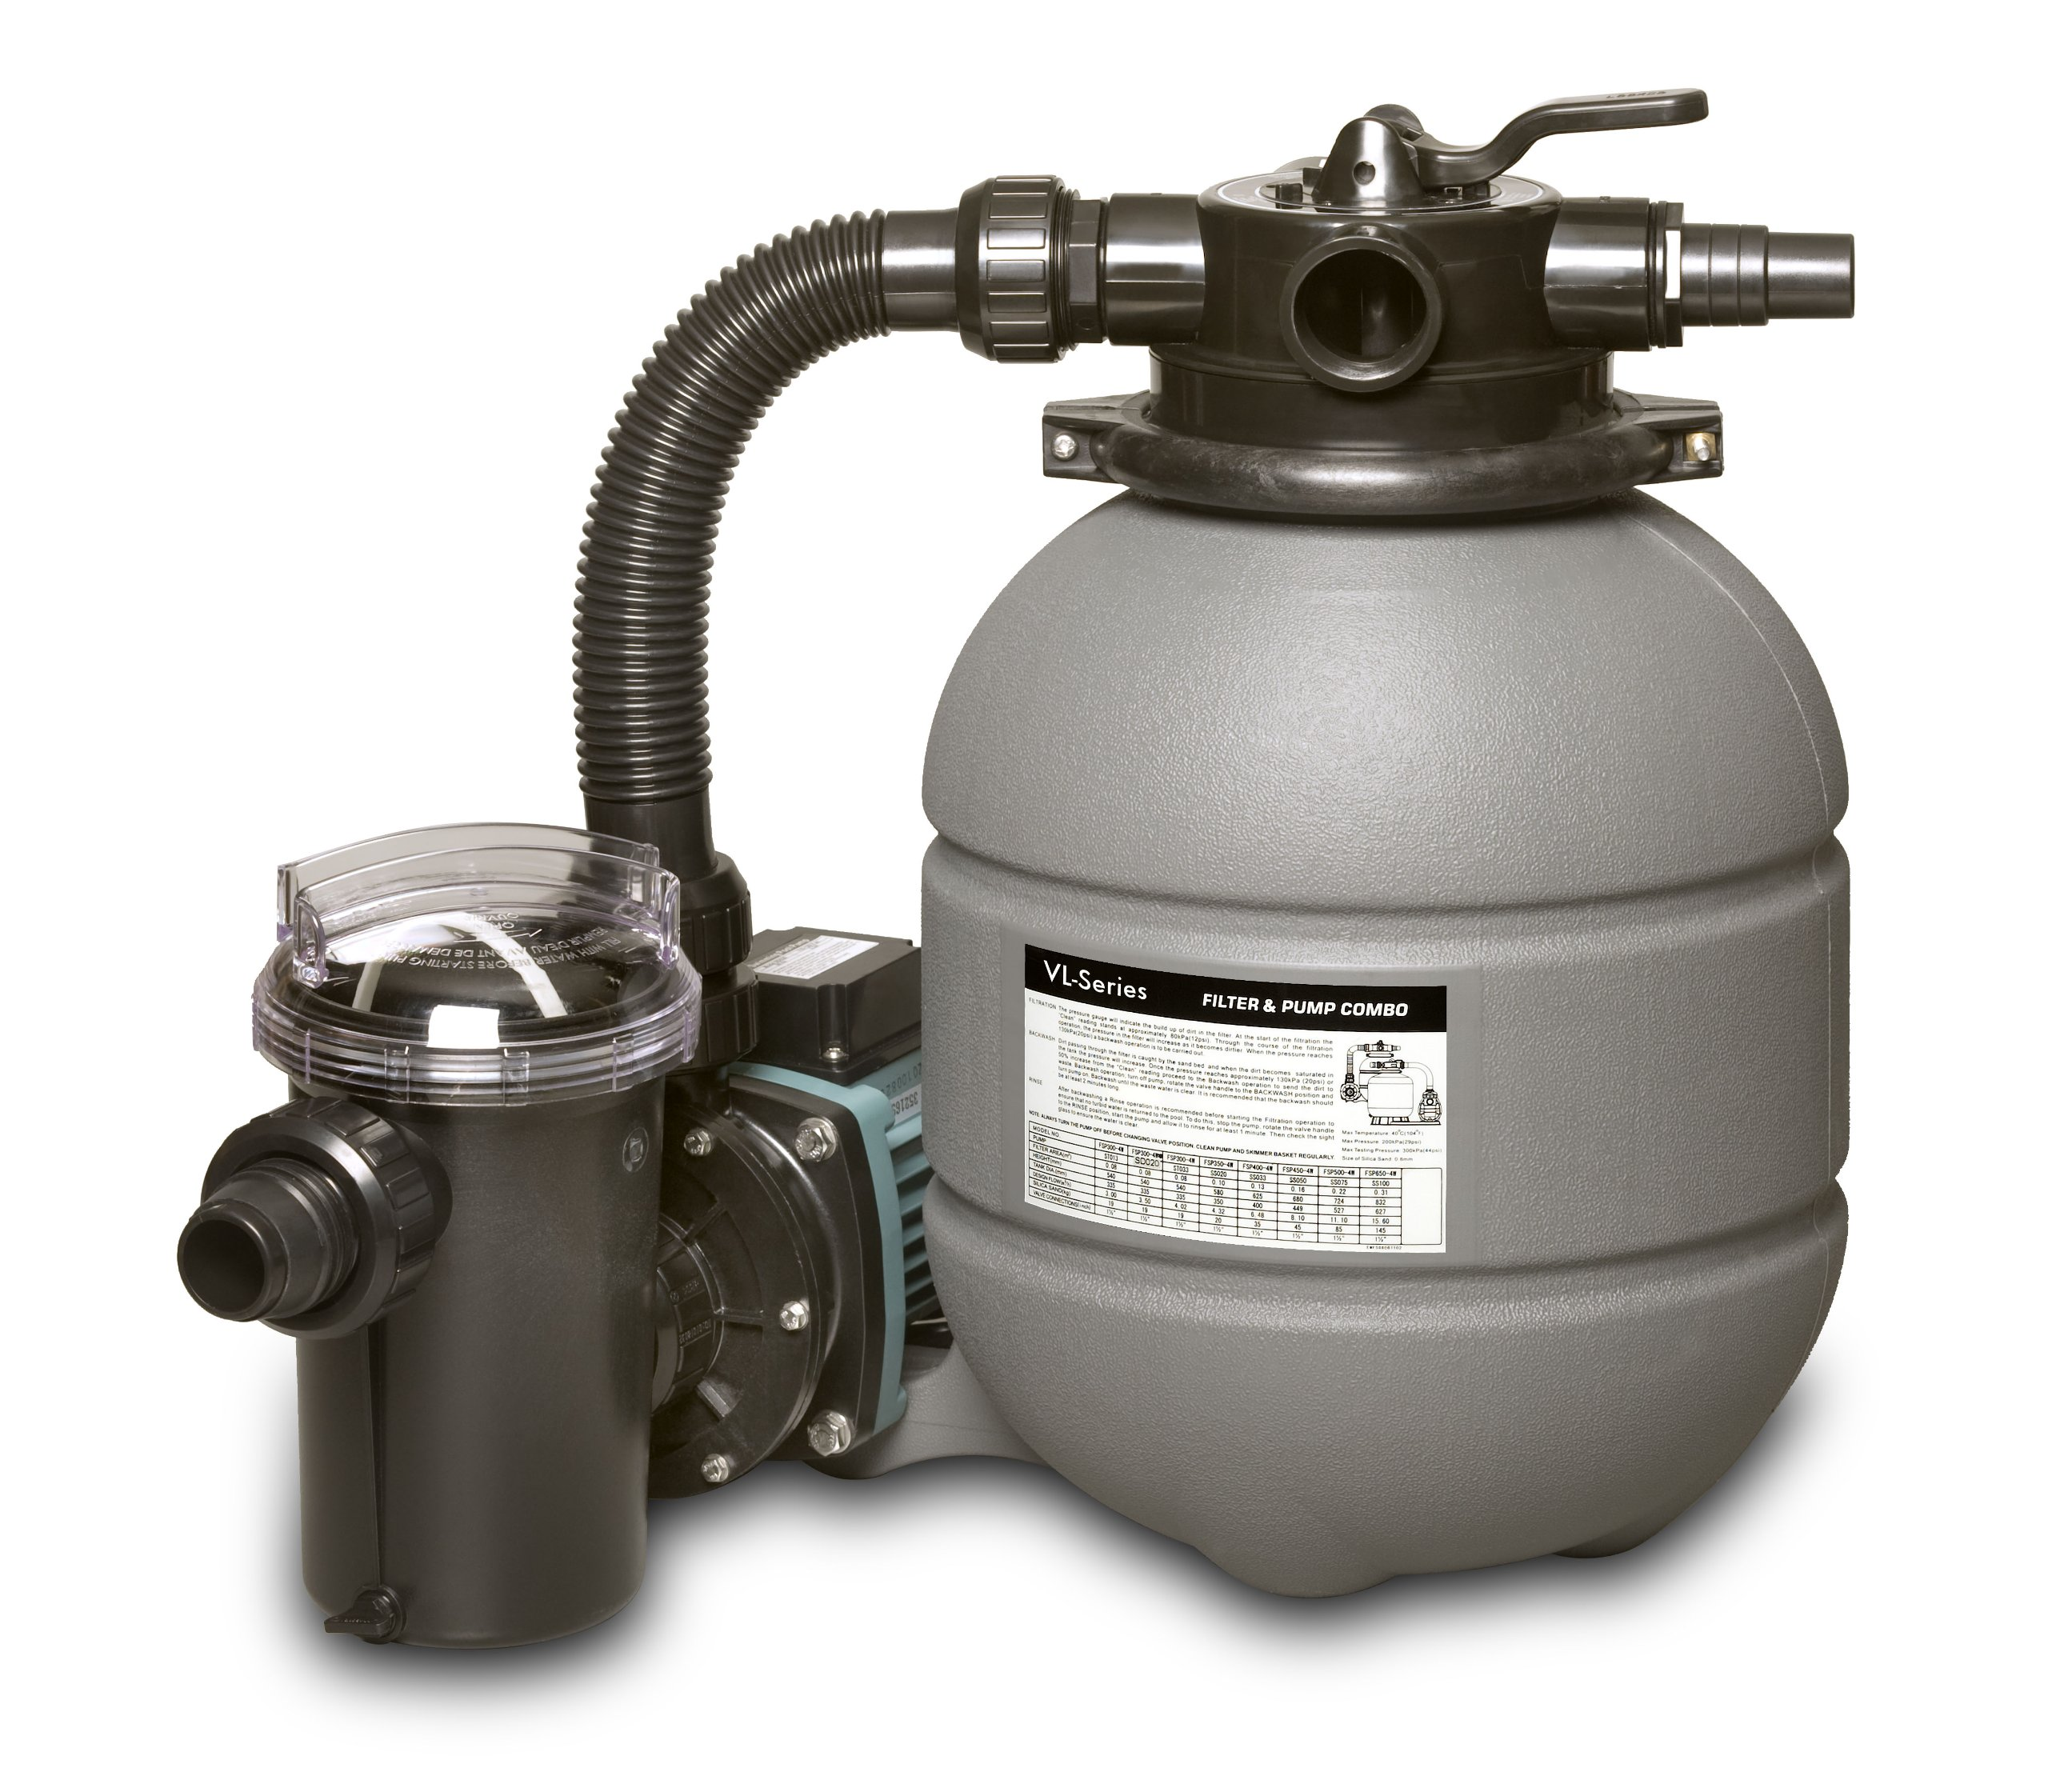 Hayward VL40T32 VL Series 30 GPM Sand Filter System by Hayward